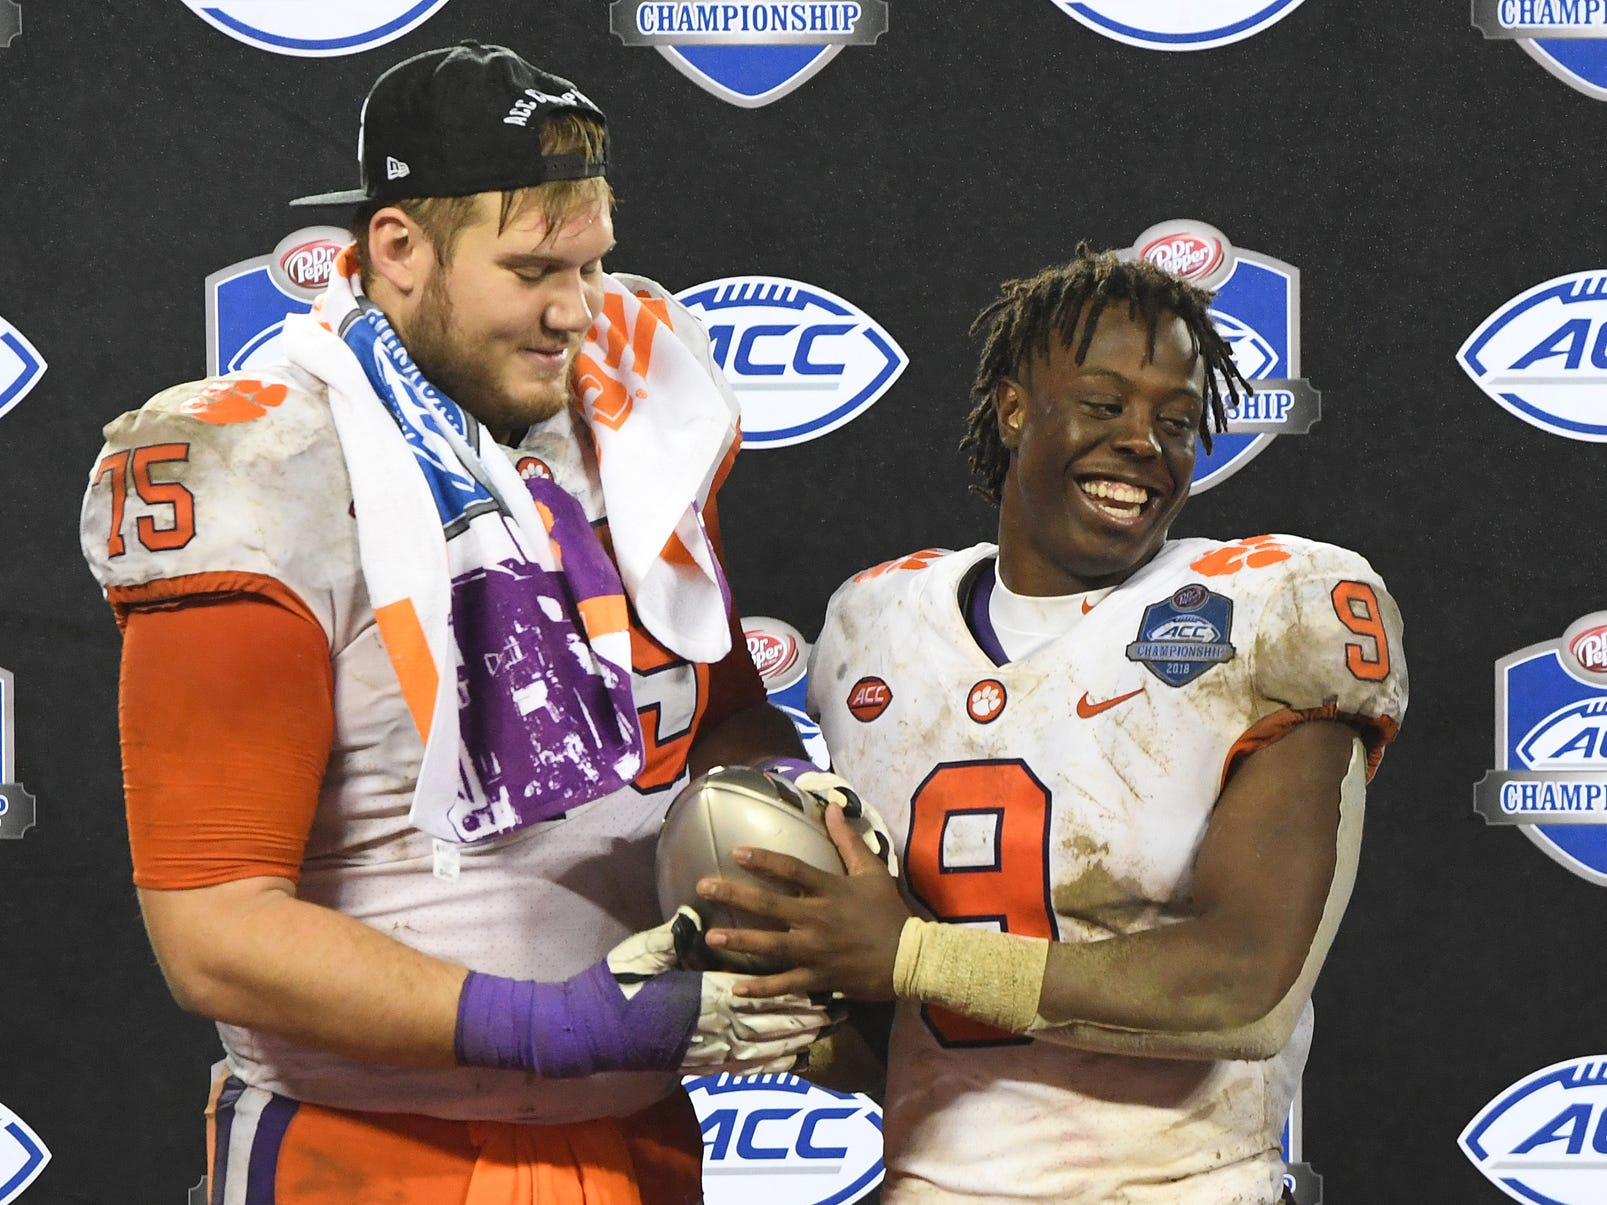 Clemson running back Travis Etienne (9) and offensive lineman Mitch Hyatt (75) hold the Dr. Pepper ACC Championship trophy after the Tigers 42-10 win over Pittsburgh at Bank of America Stadium in Charlotte, N.C. Saturday, December 1, 2018.